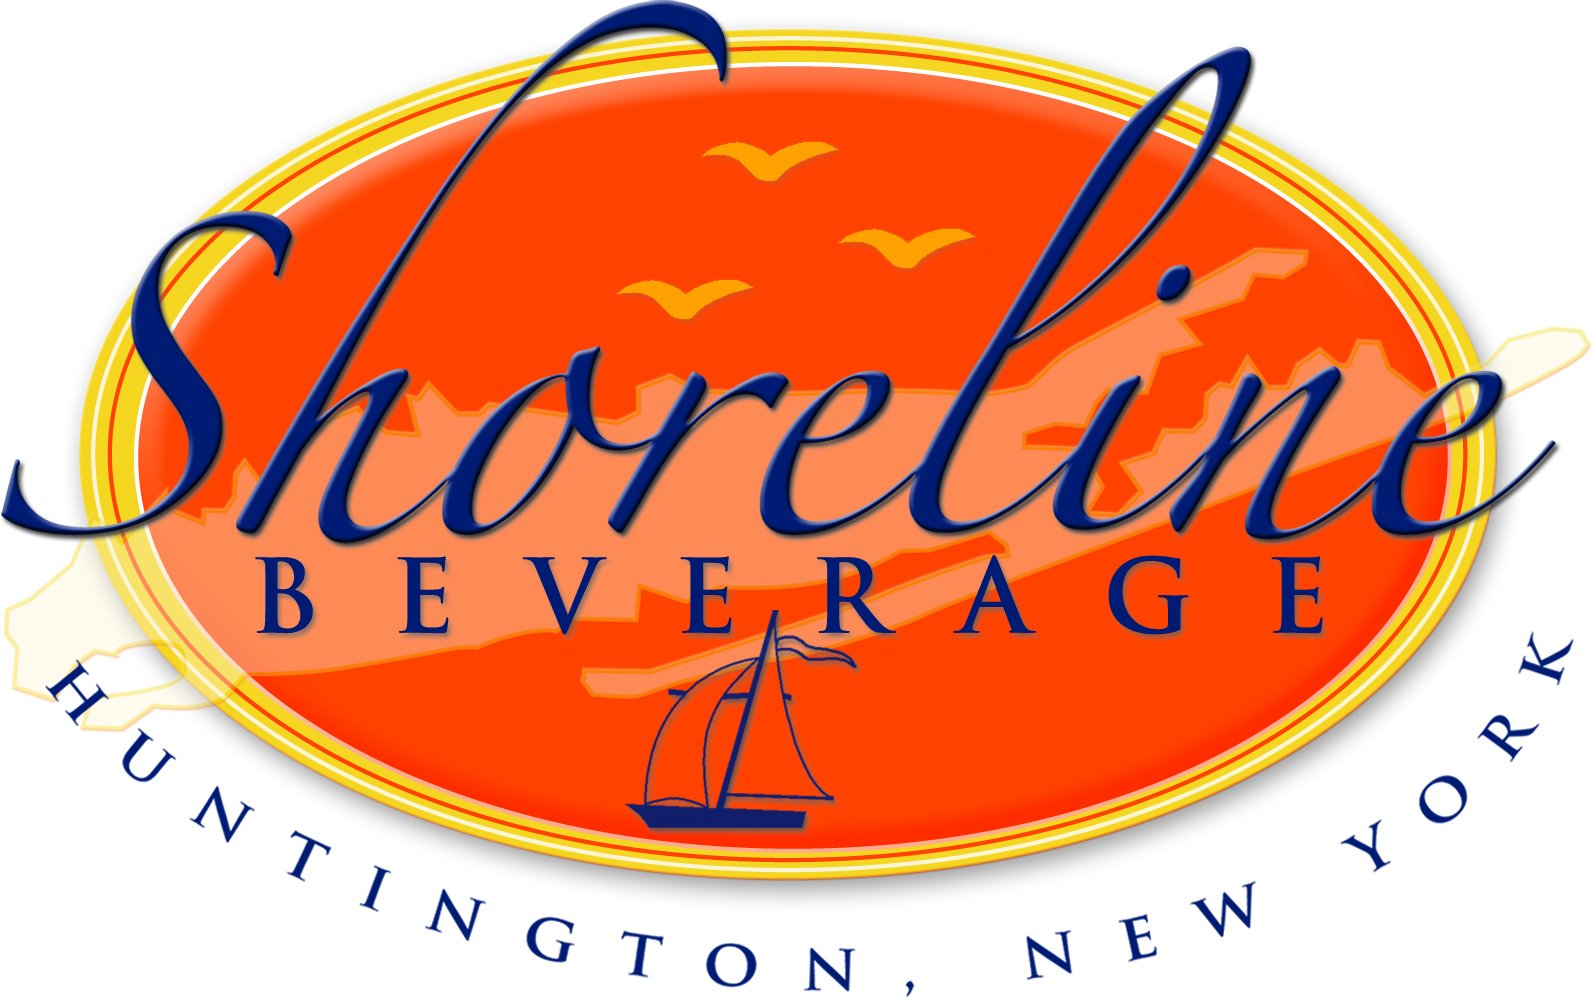 Shoreline Beverage Logo